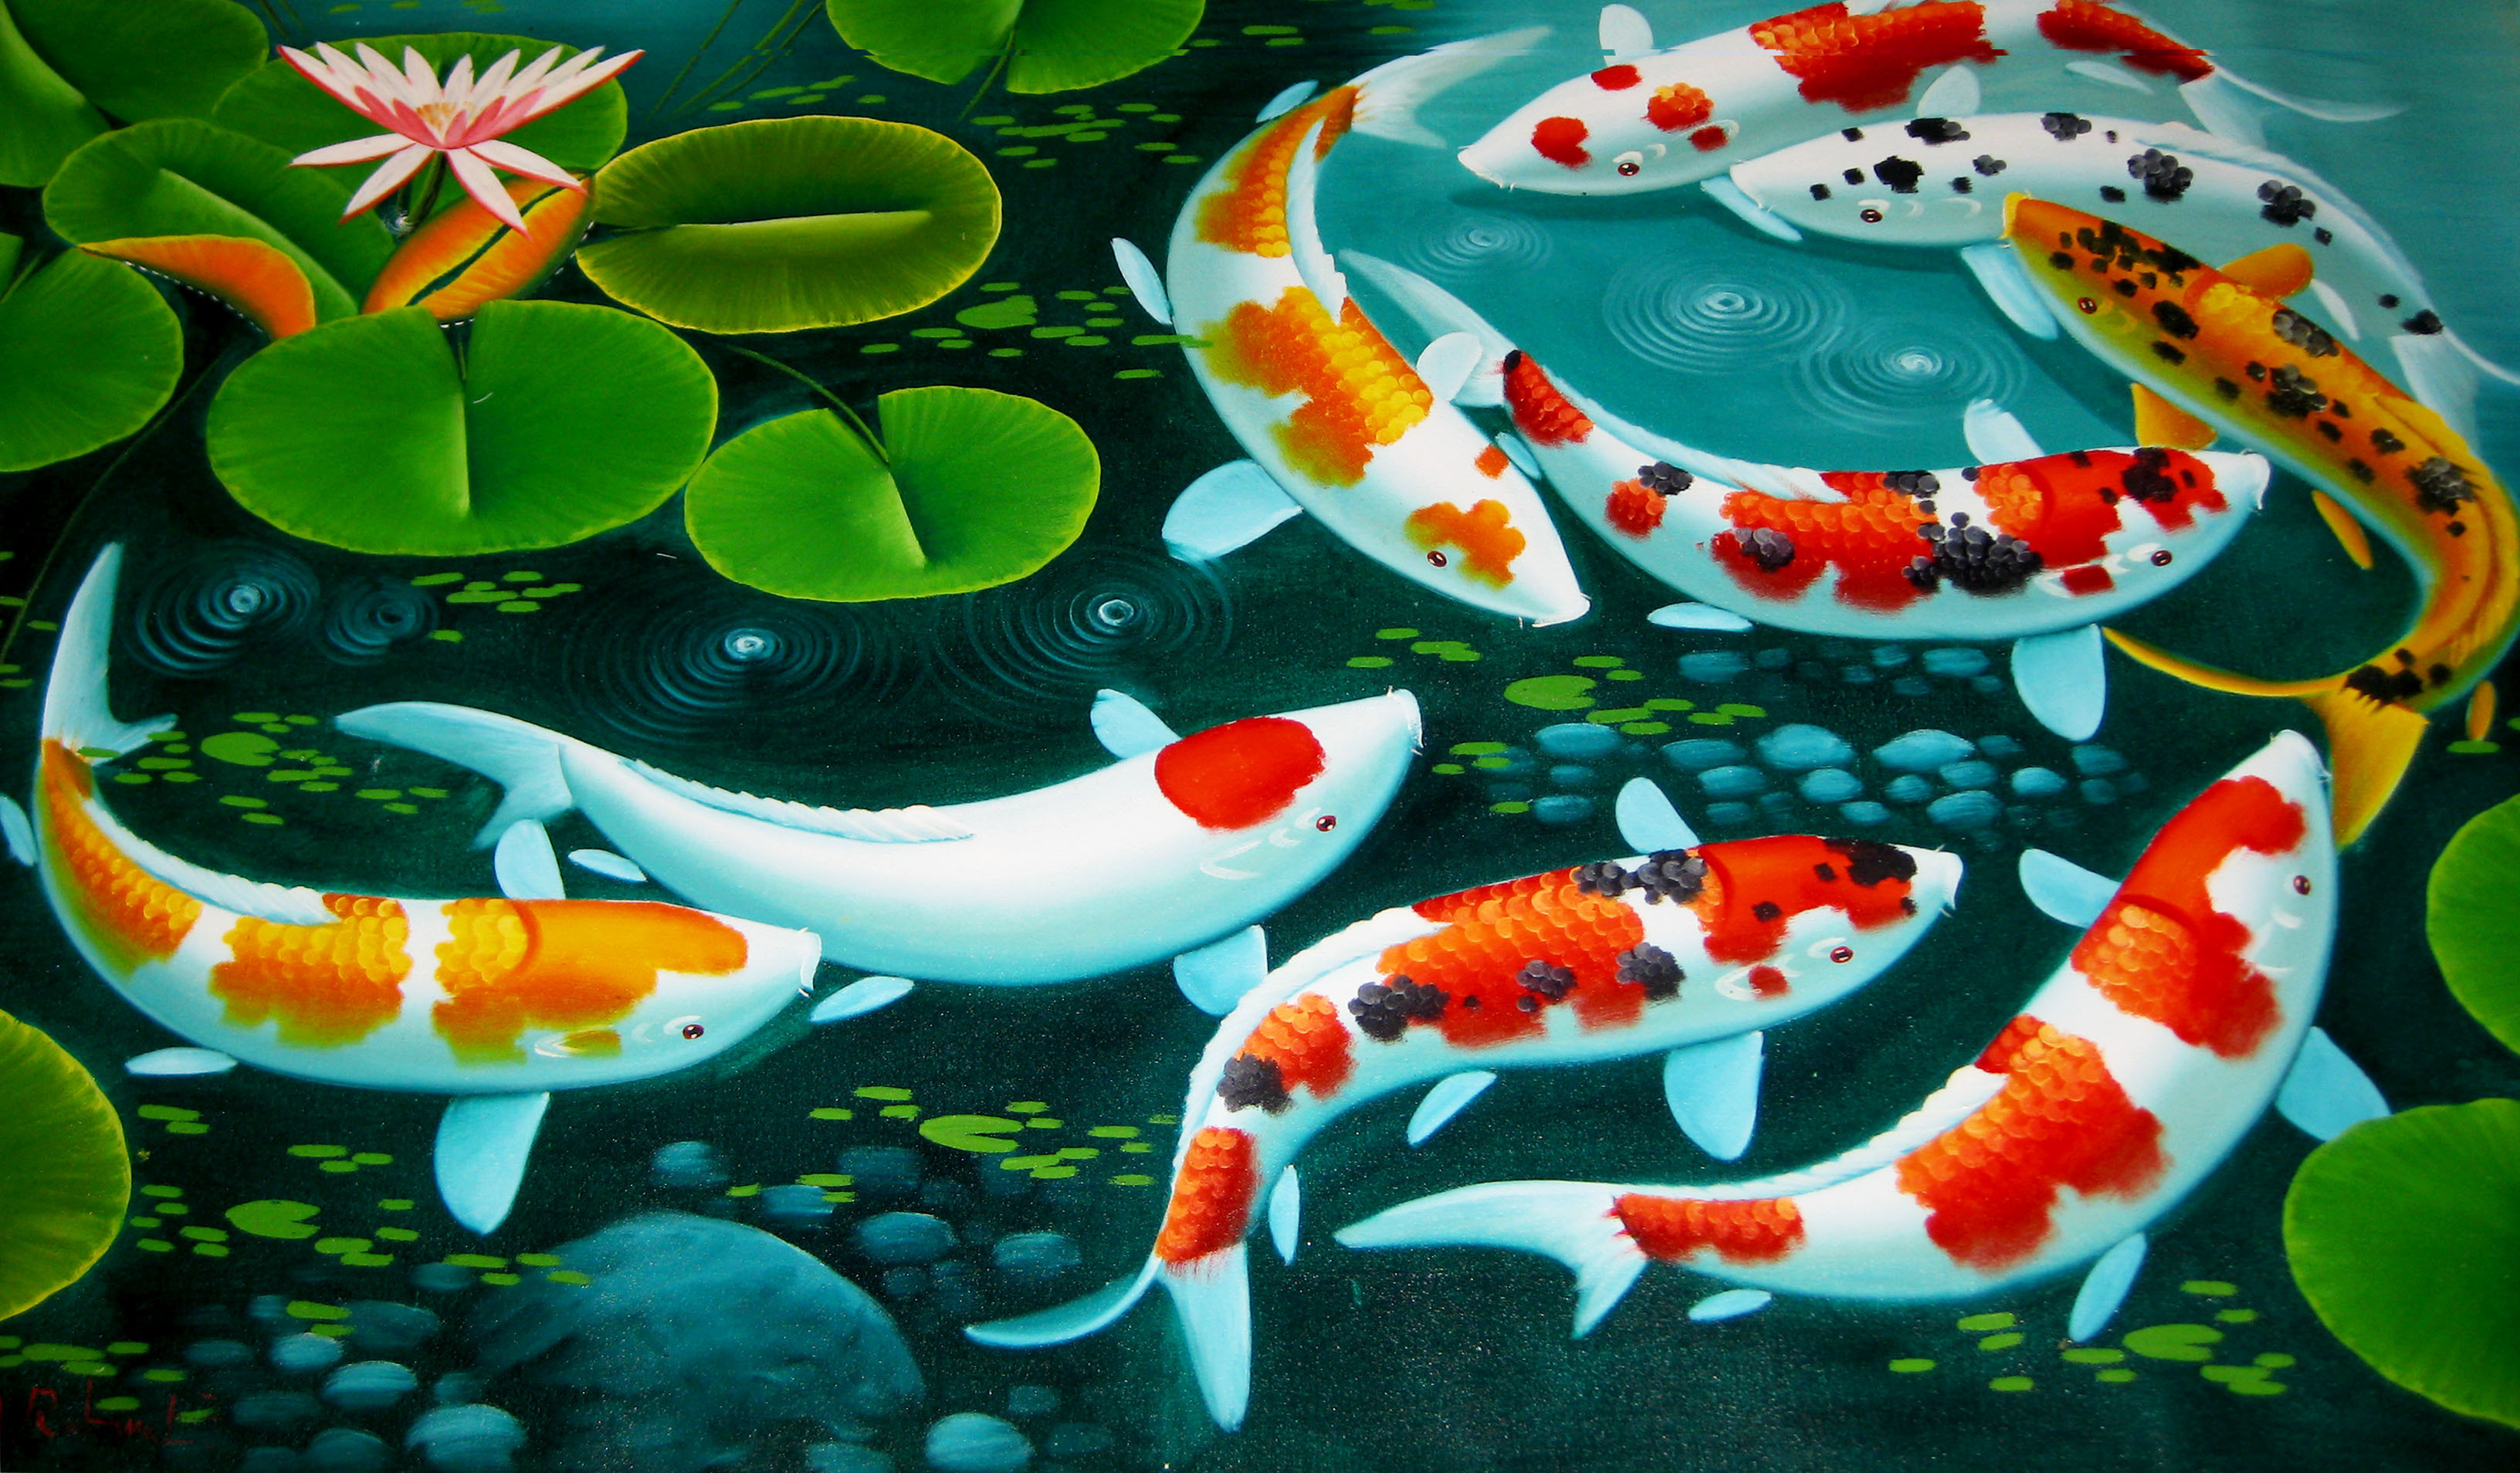 3264x1908 Koi Pond wallpaper ForWallpapercom